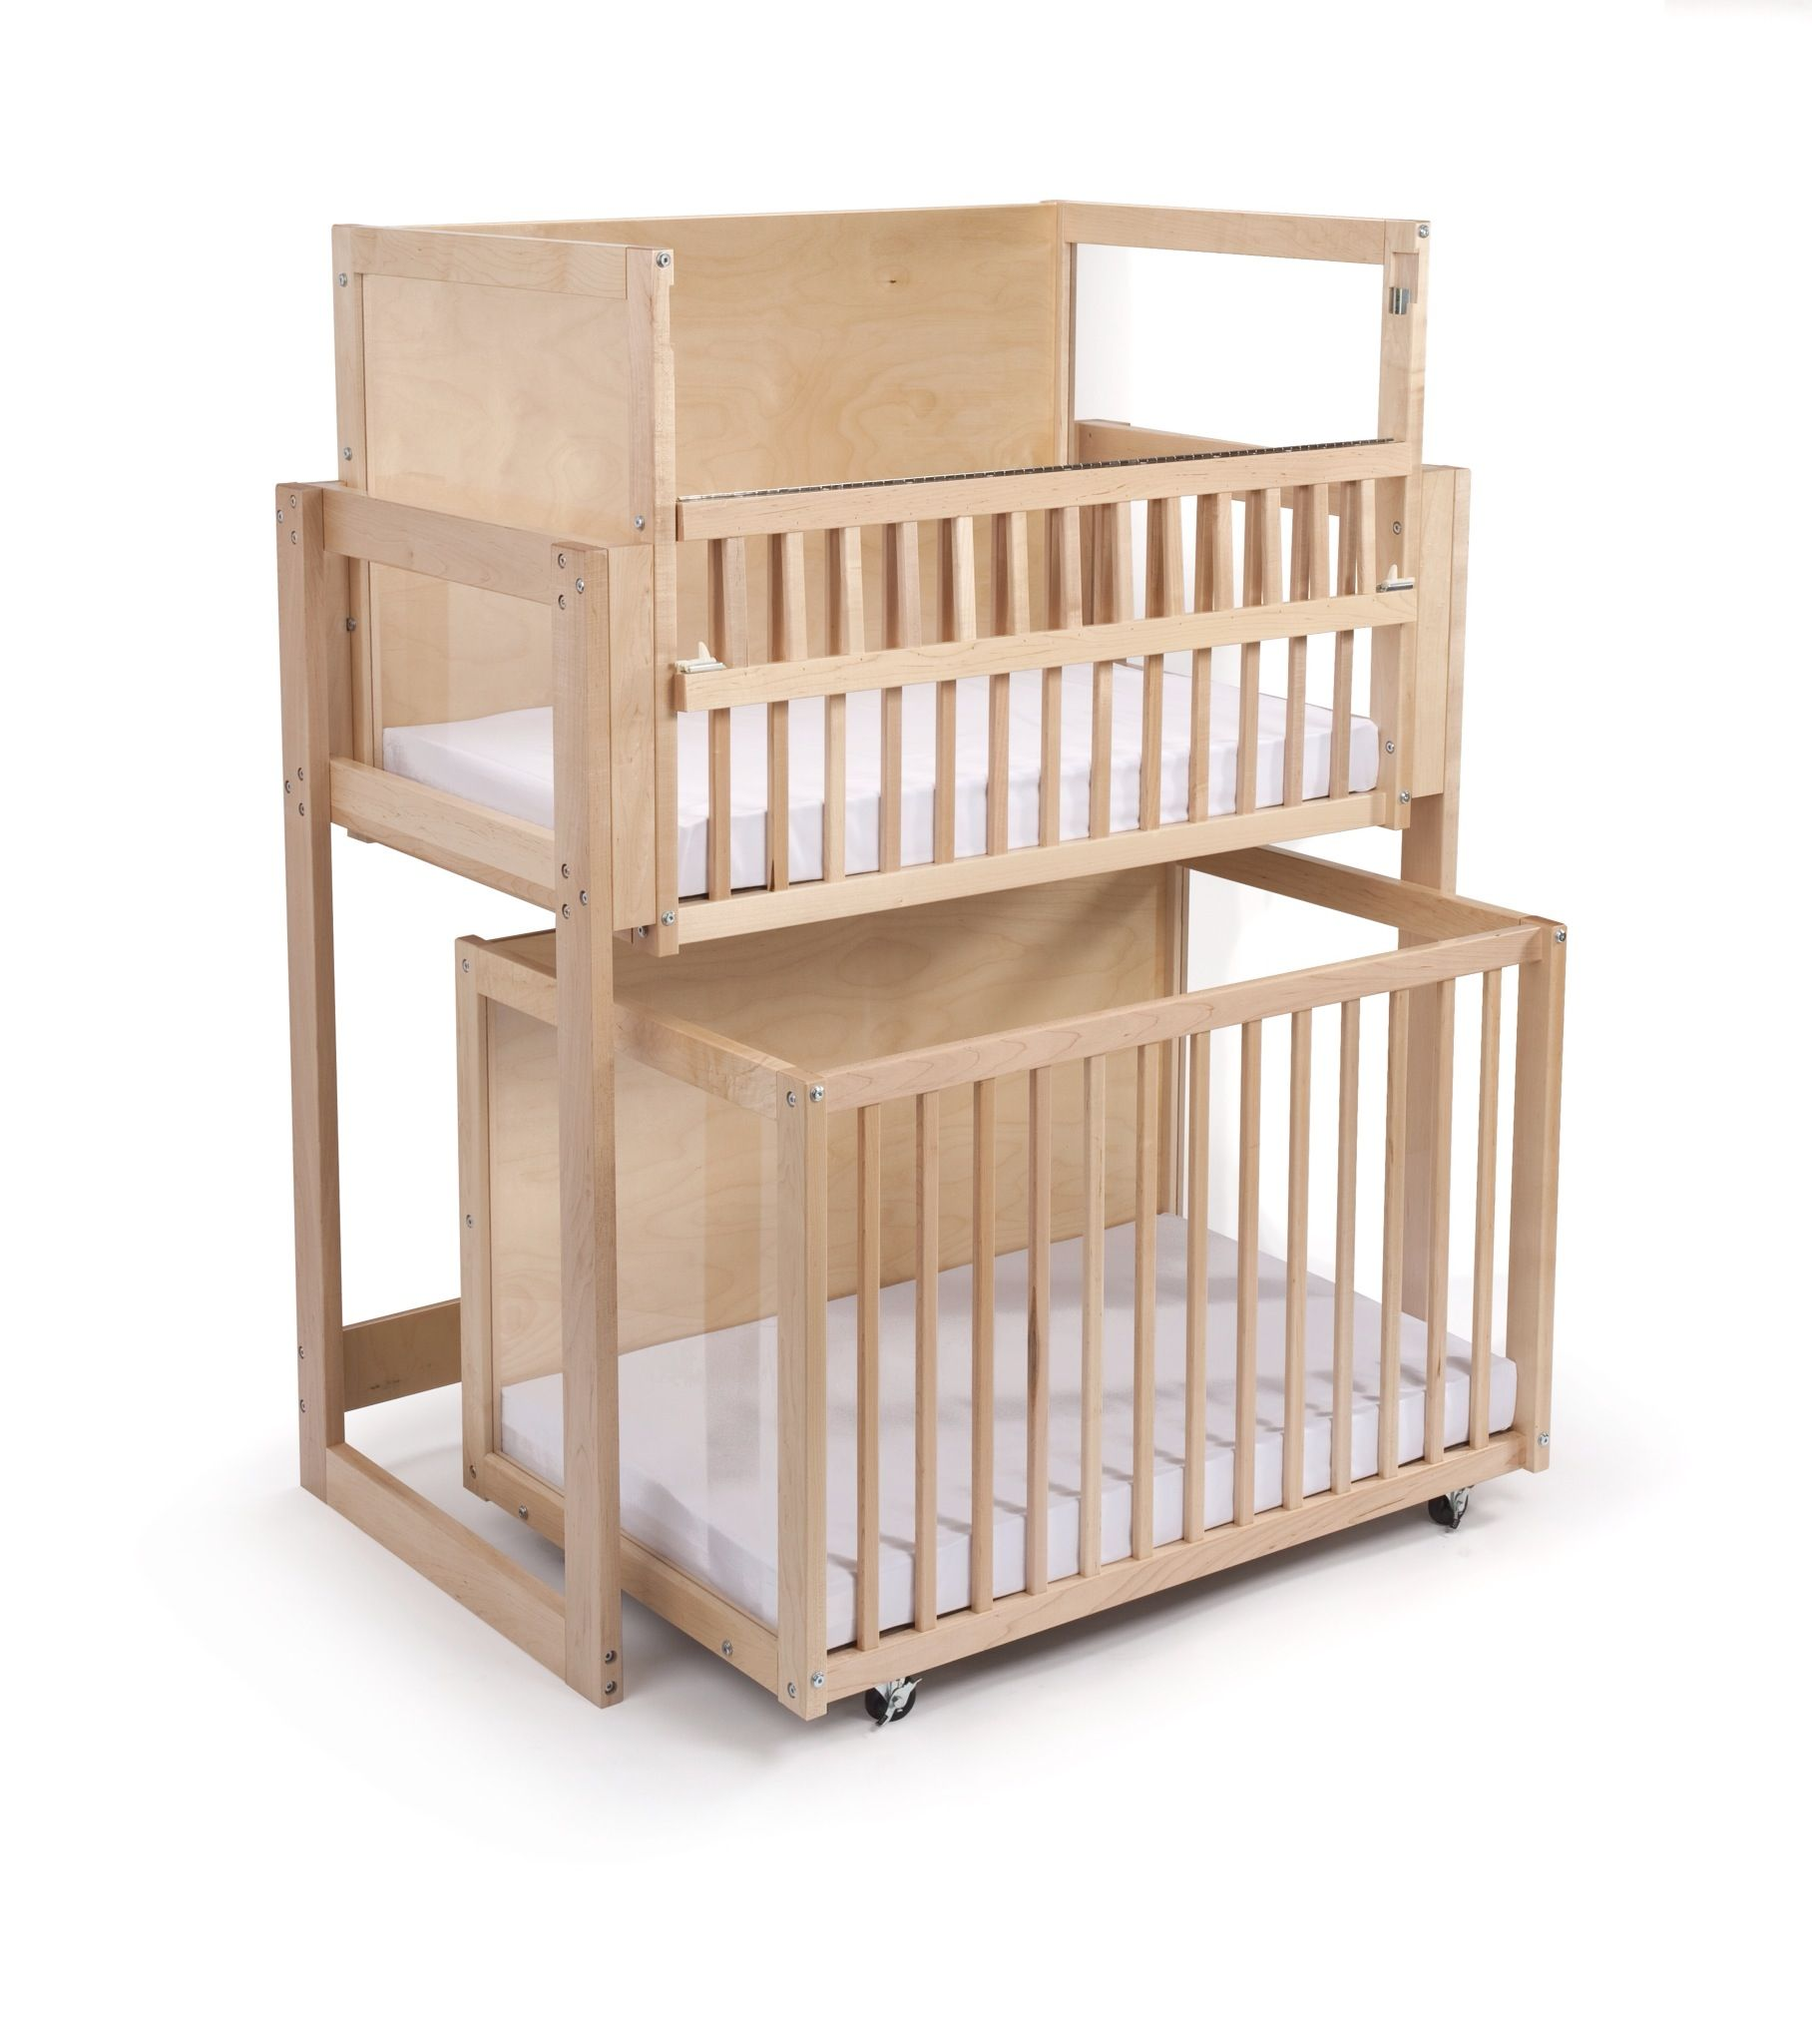 Double Decker Bunk Bed Stacked Cribs Must Save Space